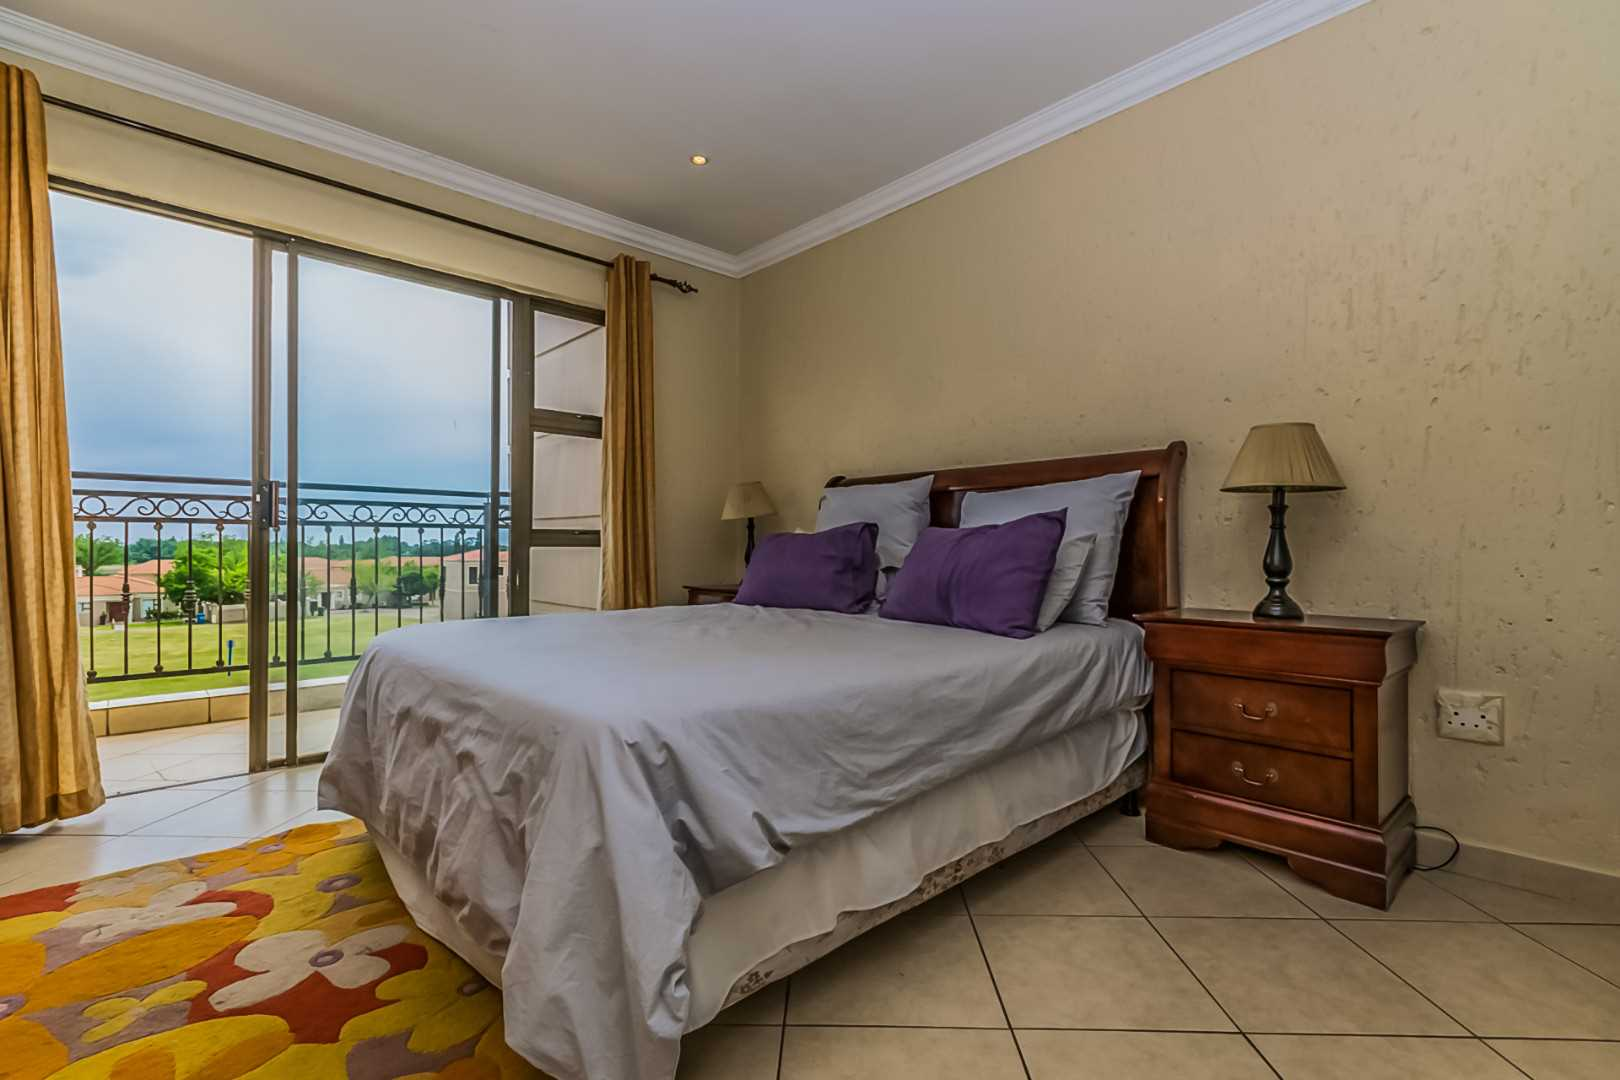 2nd bedroom with balcony